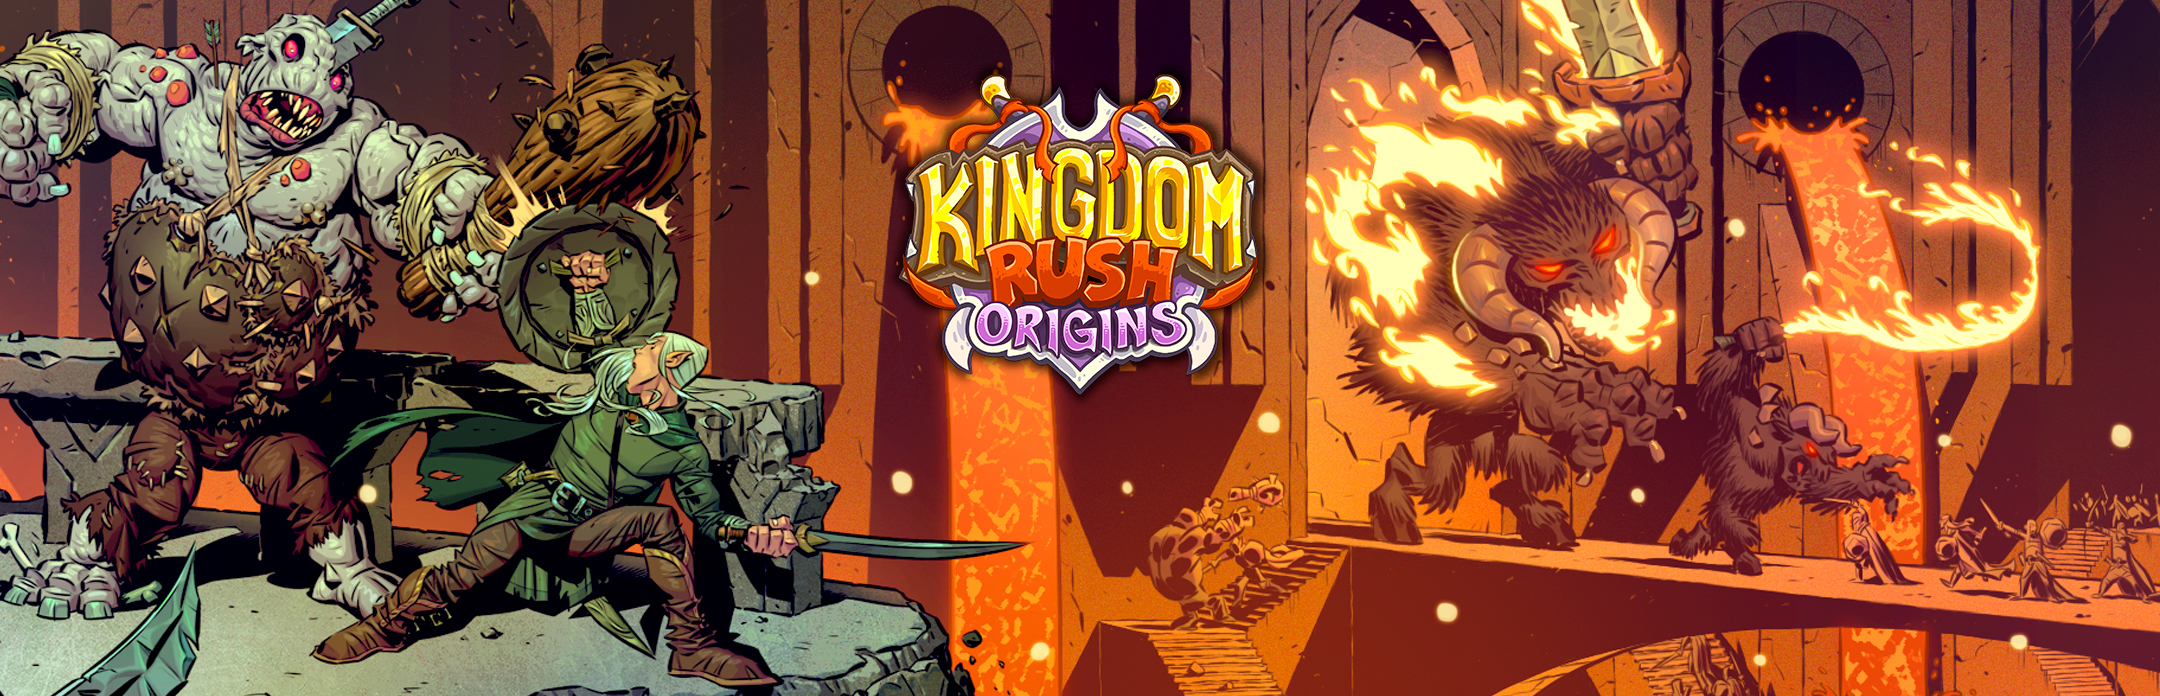 Kingdom Rush Origins :: A new expansion: Forgotten treasures is here!